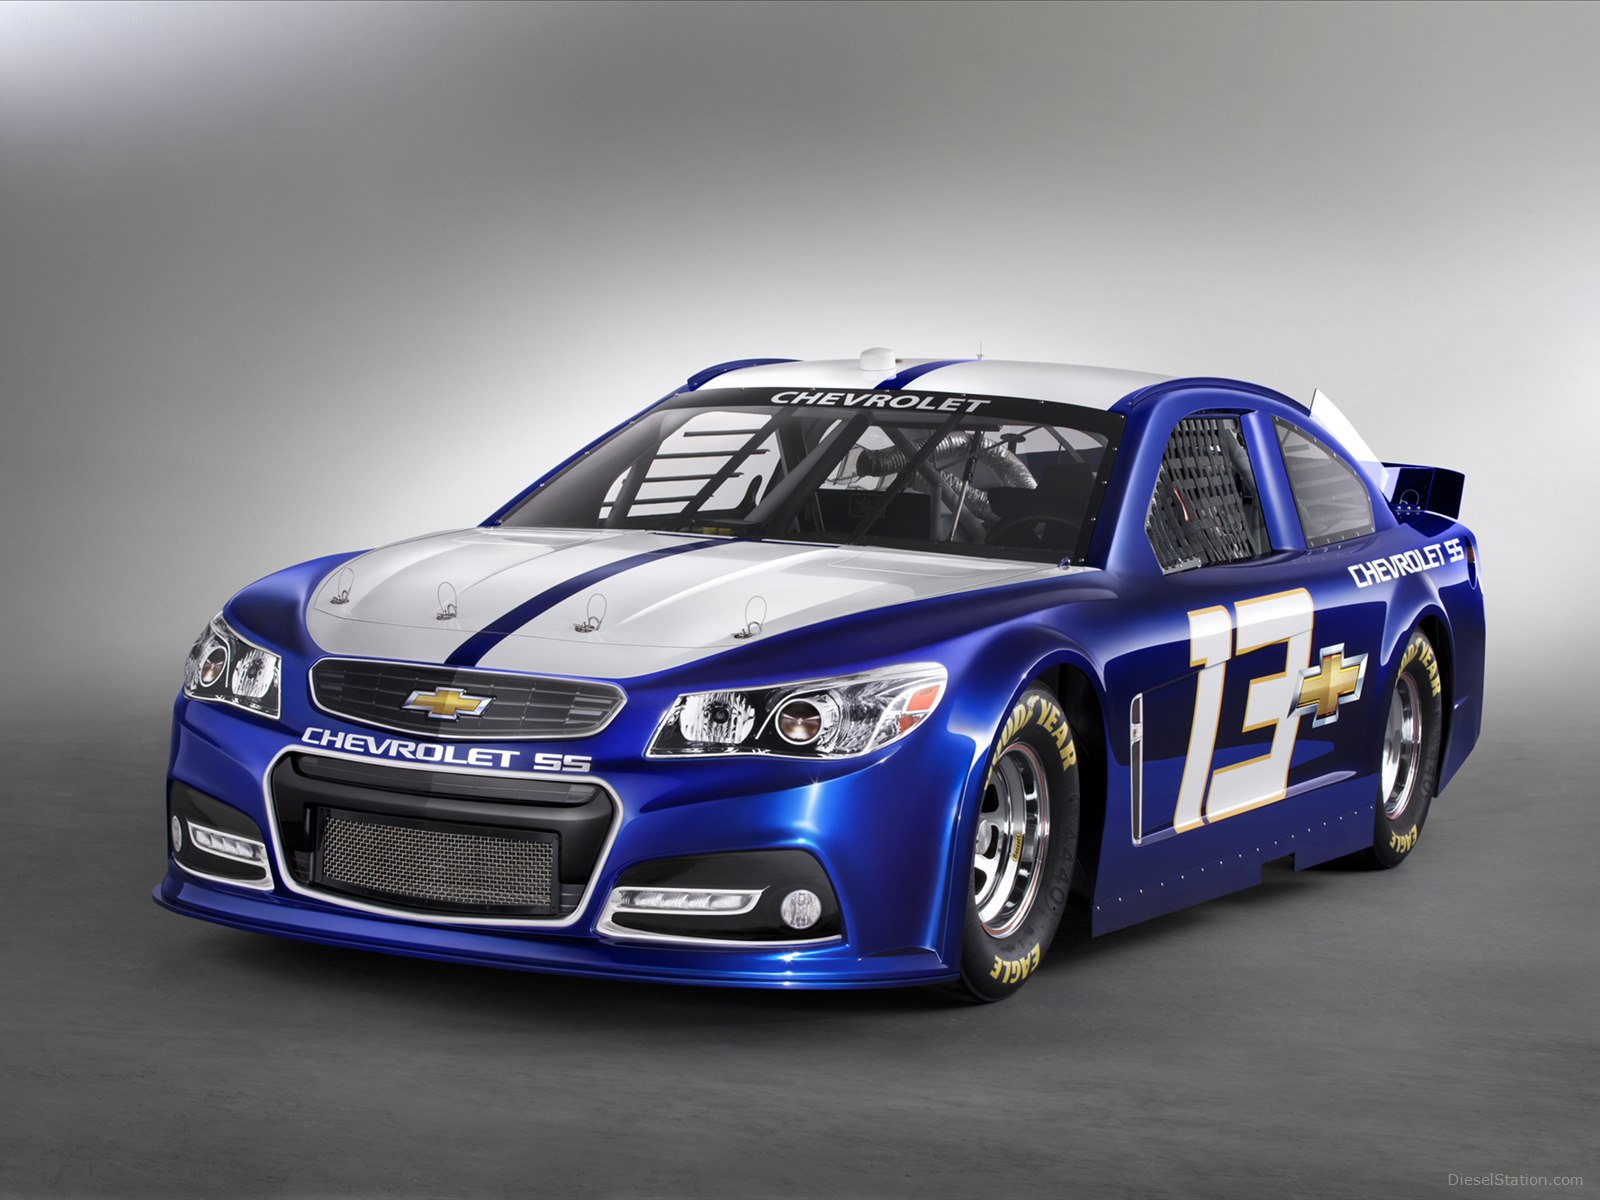 Chevrolet NASCAR SS Race Car 2013 Exotic Car Wallpapers 02 of 16 1600x1200